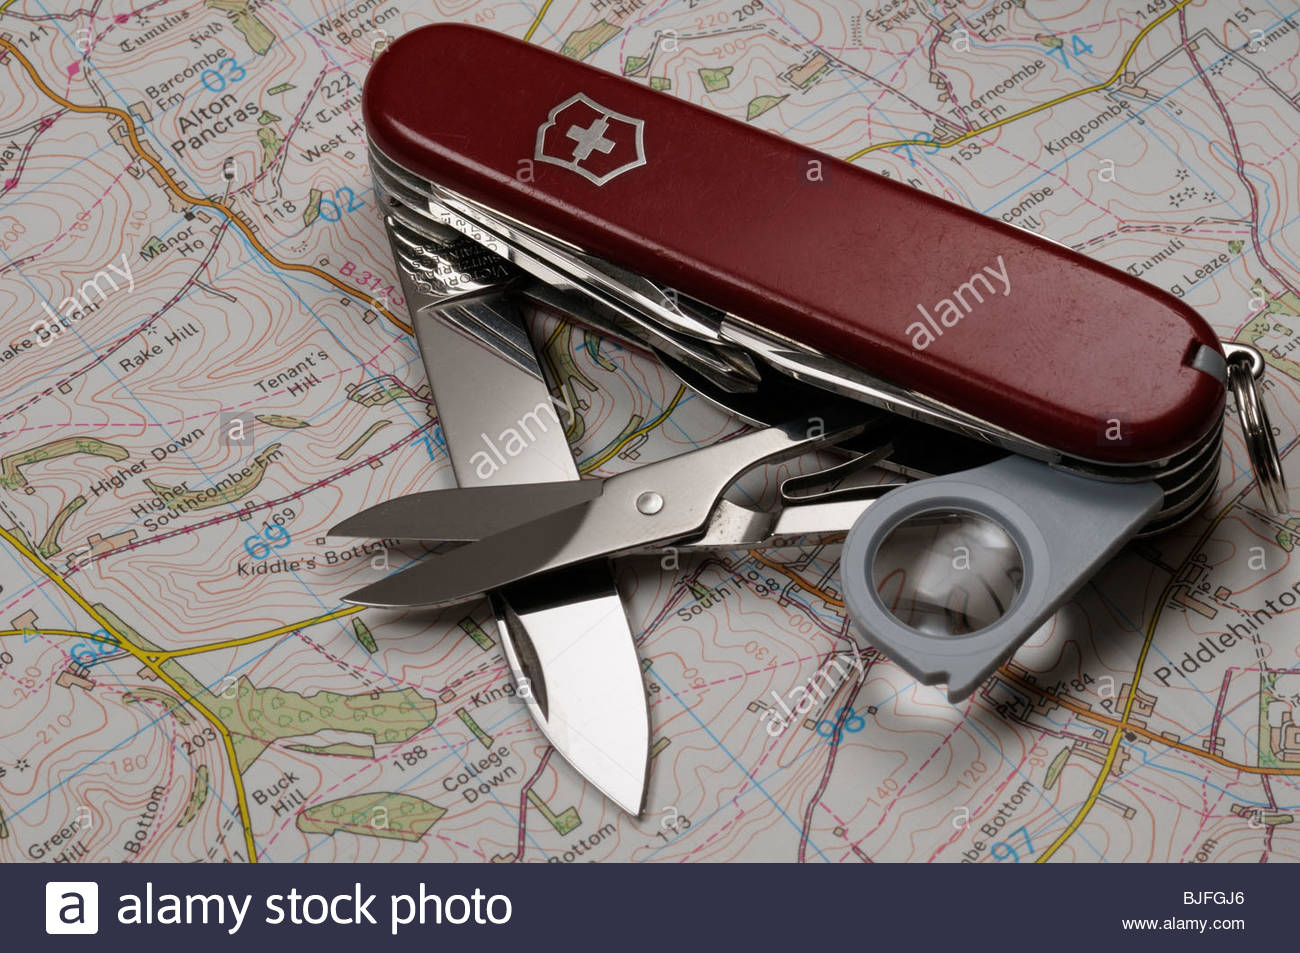 Open Swiss Army knife on map, Dorset, England - Stock Image